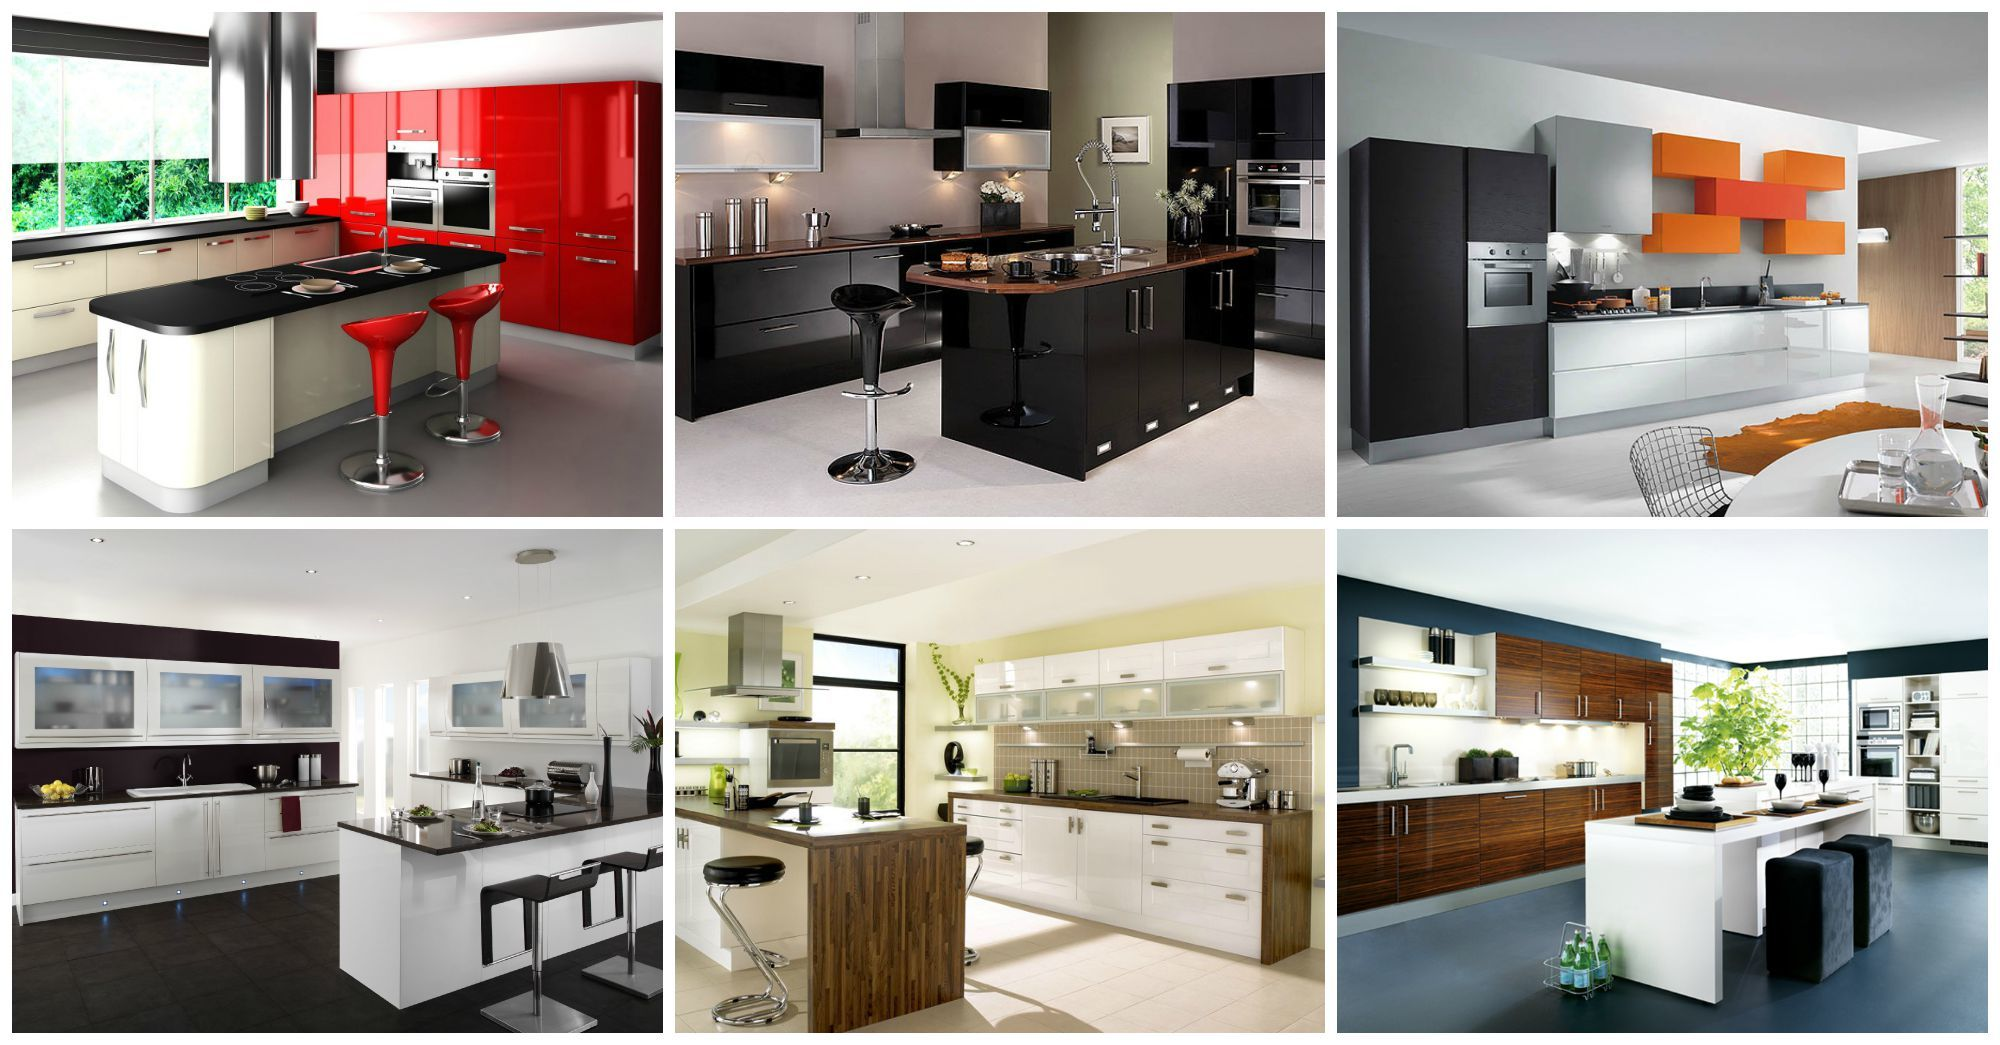 10 Modern Kitchen Designs You Have to See Now